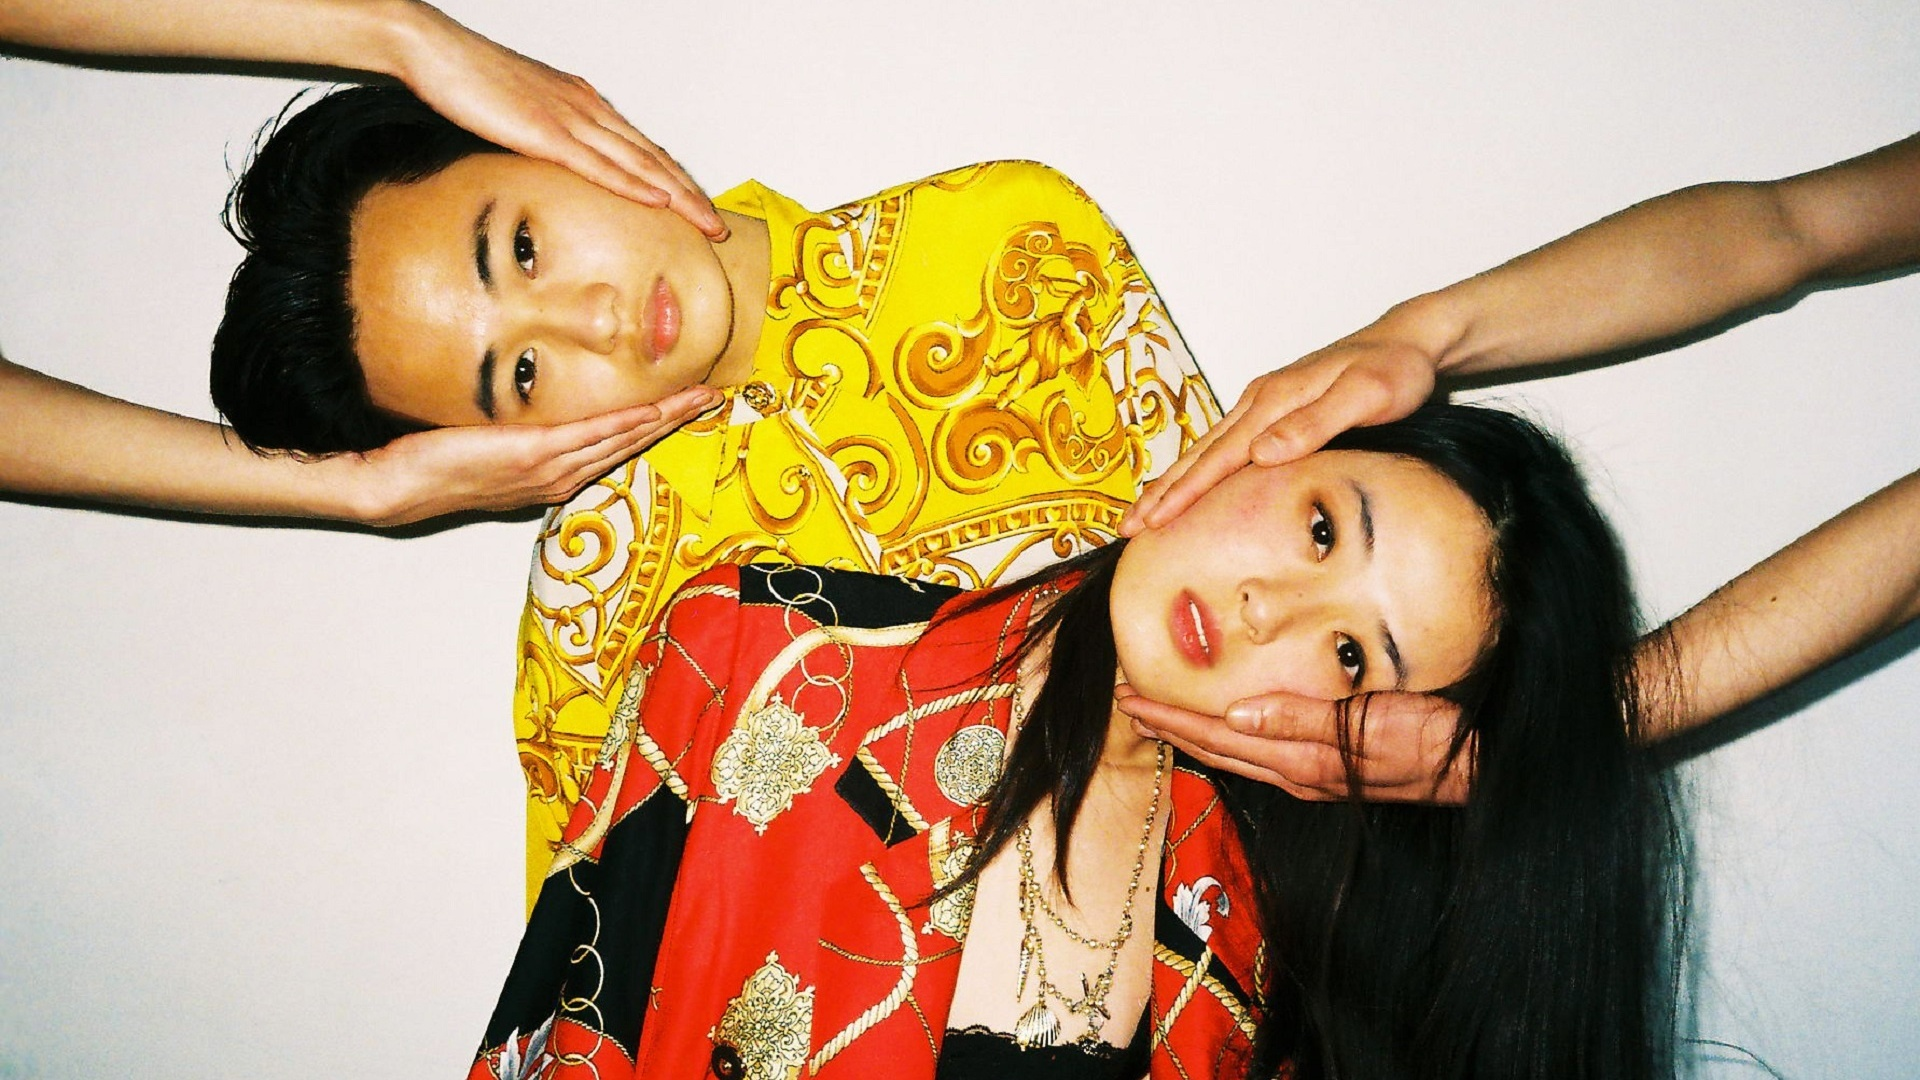 ren hang untitled 2 faces.jpg